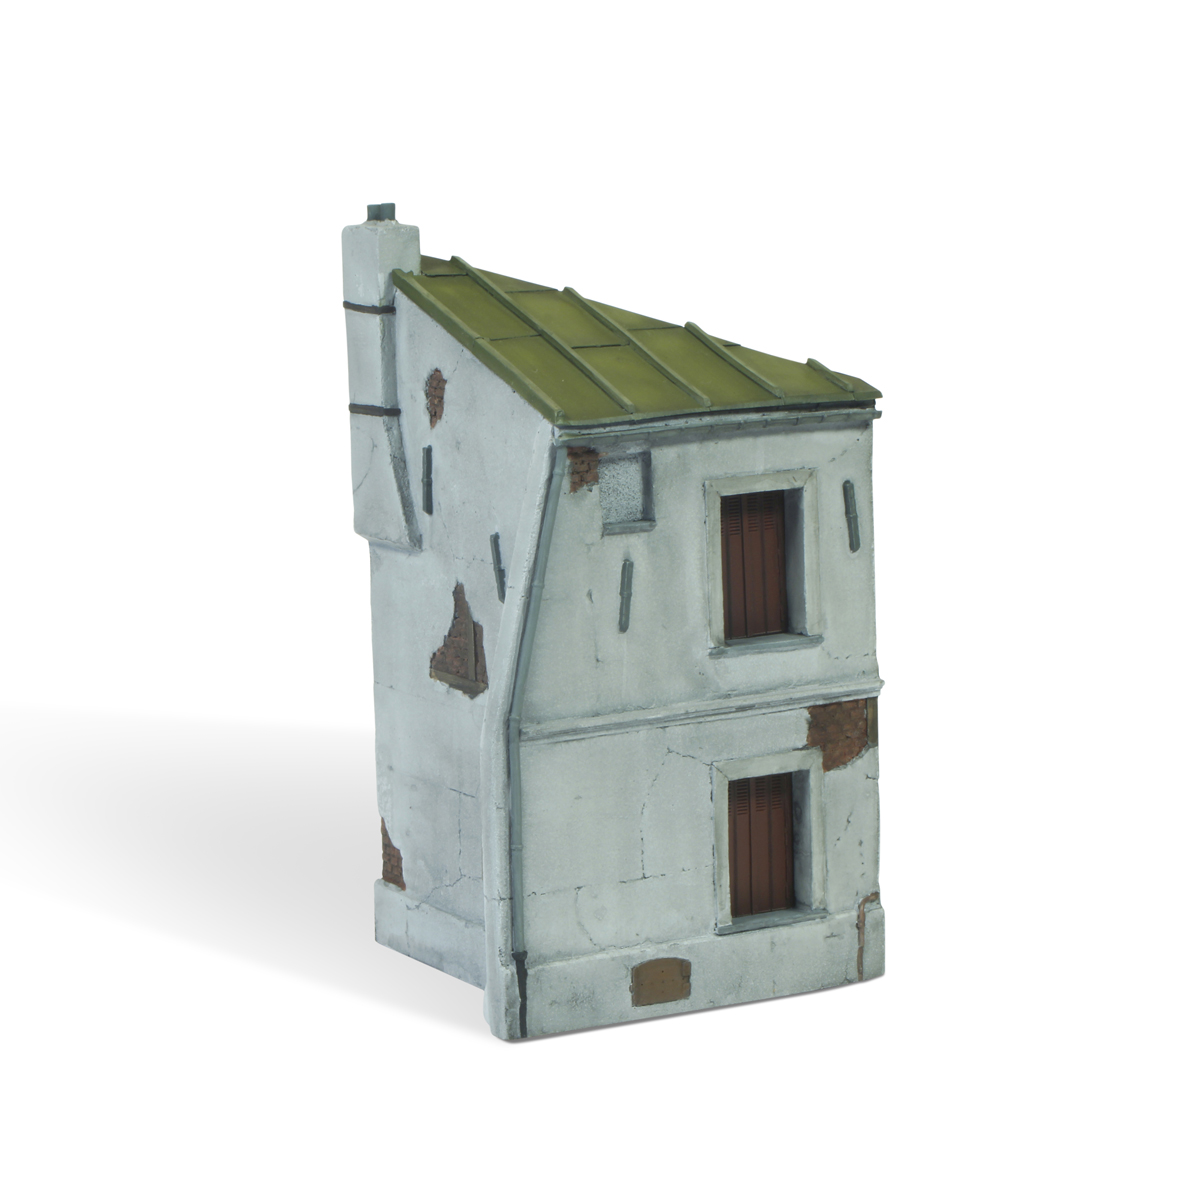 French House Corner (Type 1), 1:72